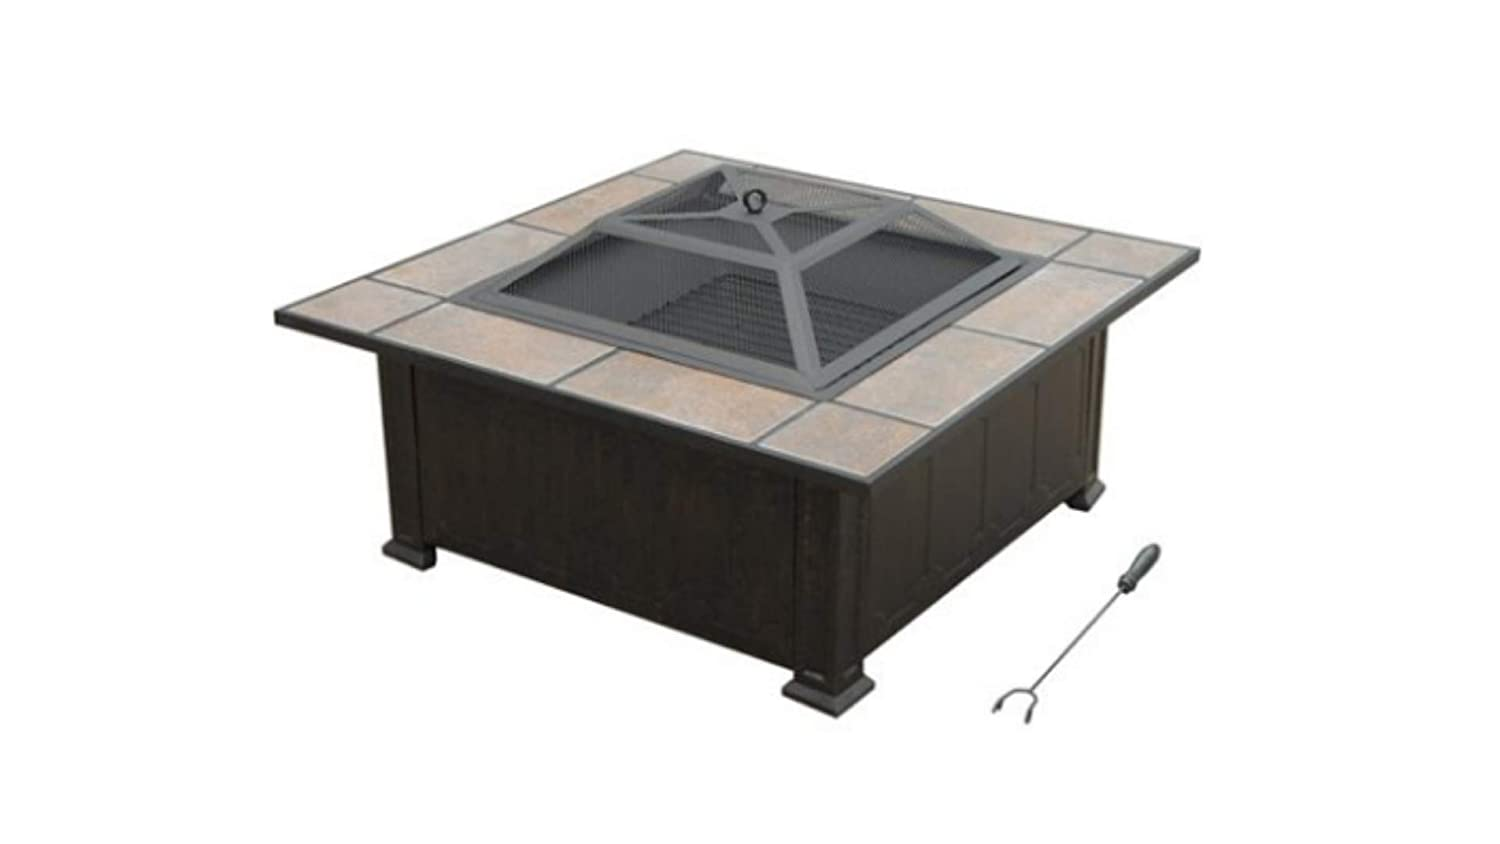 Axxonn Tuscan Ceramic Tile Top Fire Pit Black Antique Bronze Model Ft501ptesmlid Patio Lawn Garden Fire Tables